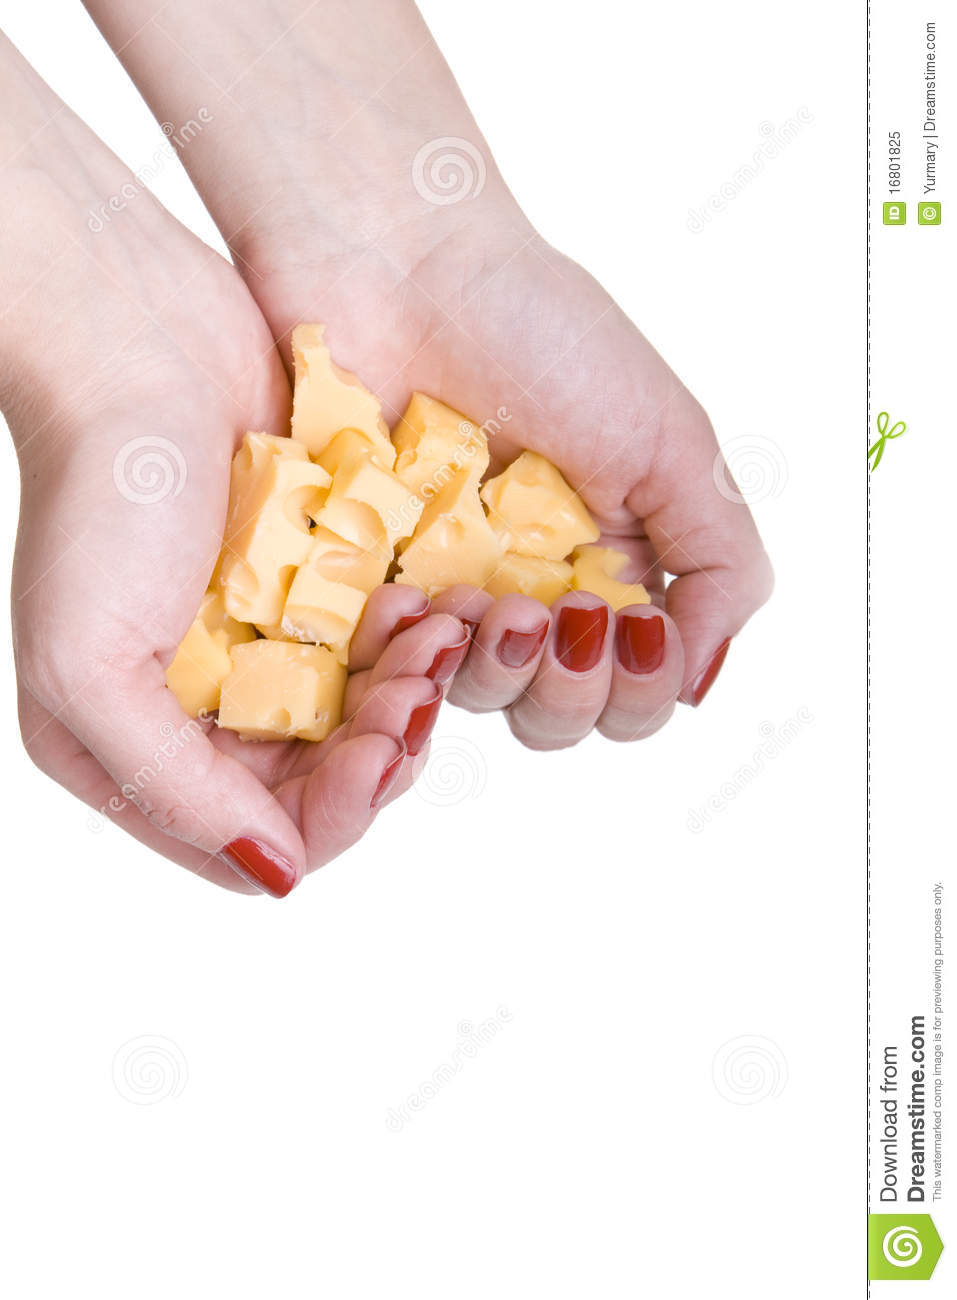 Many Pieces Of Cheese In Your Hands Royalty Free Stock